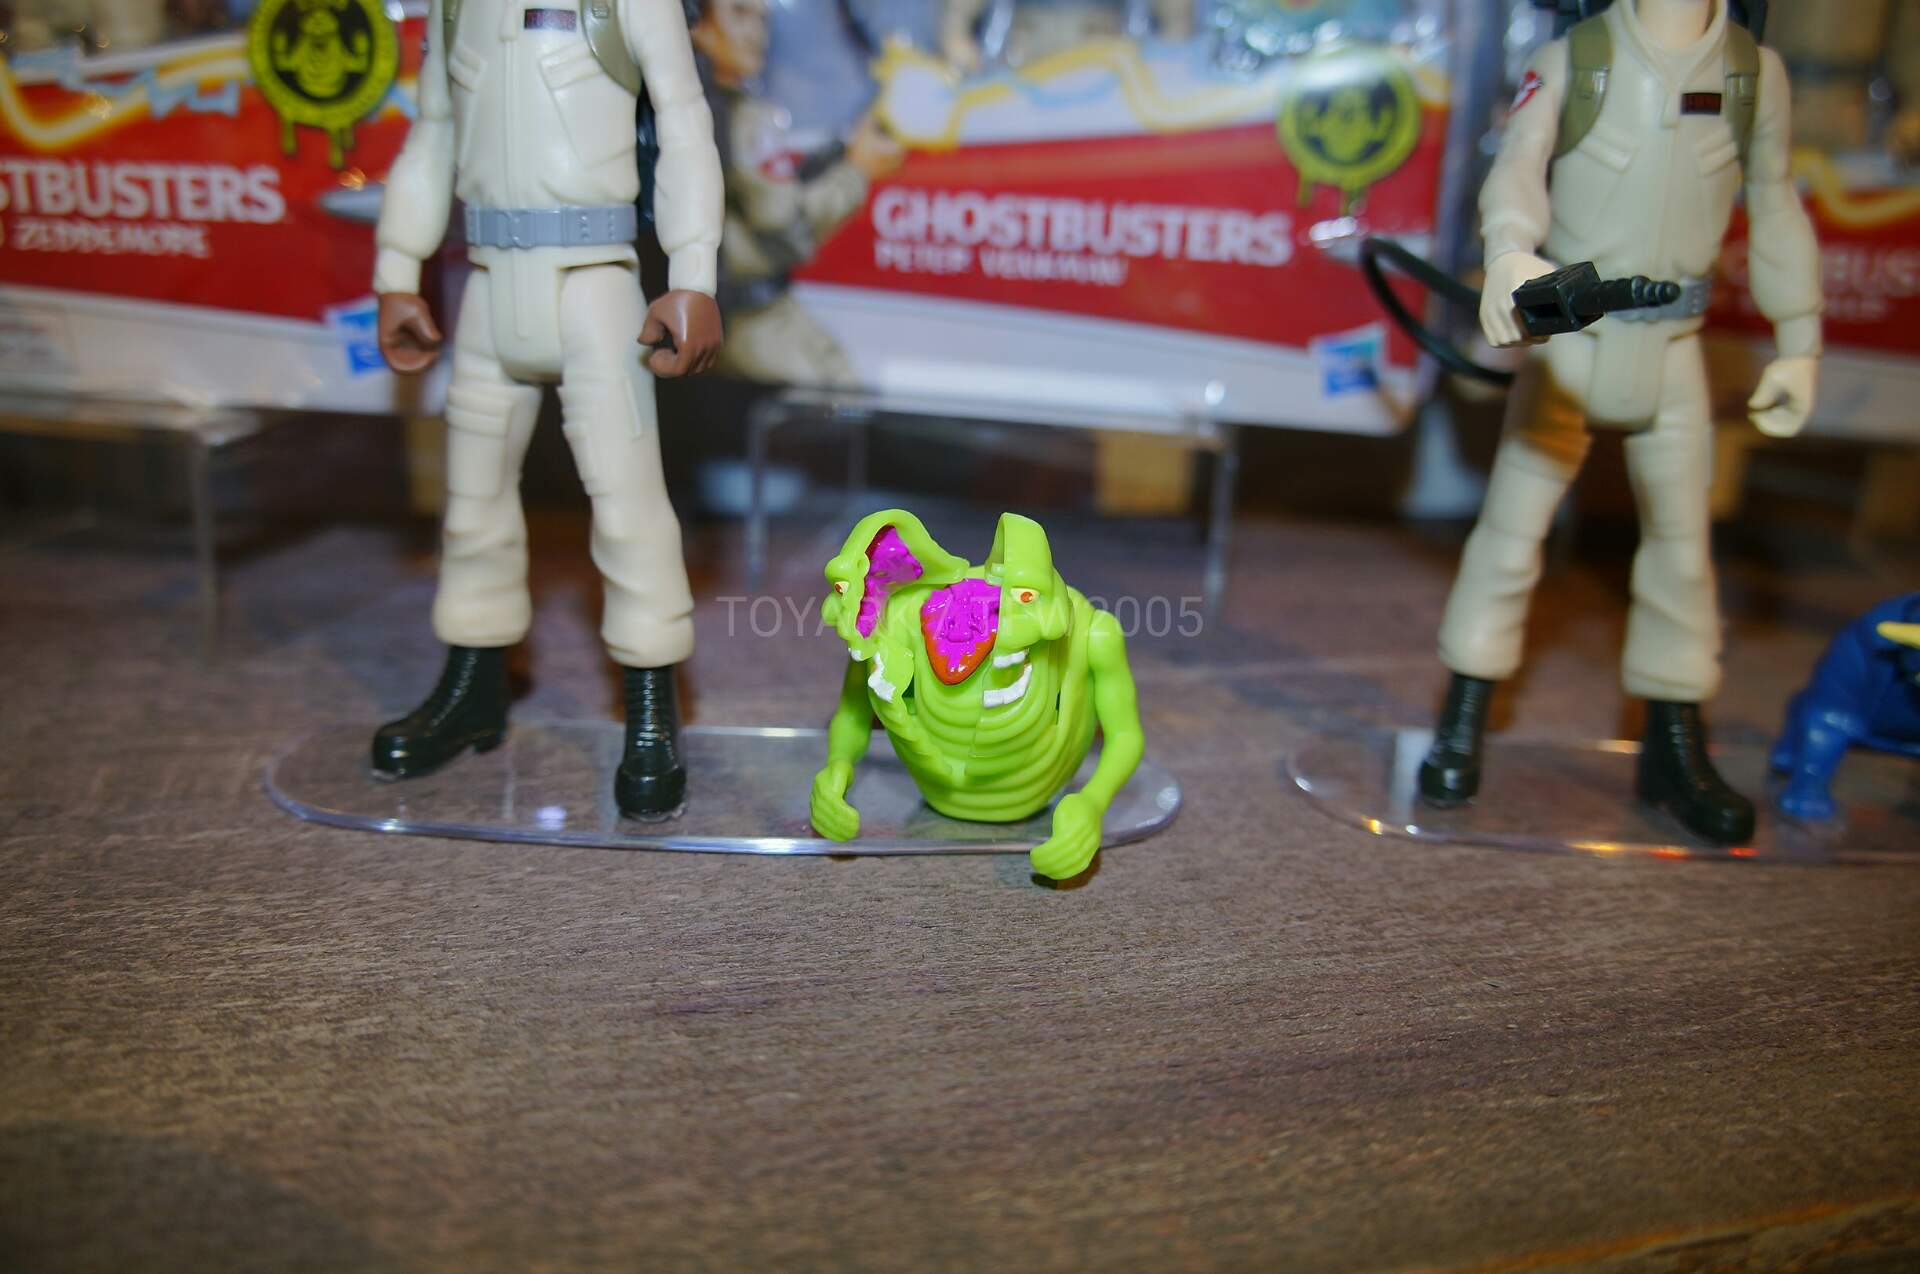 Toy-Fair-2020-Hasbro-Ghostbusters-064.jpg